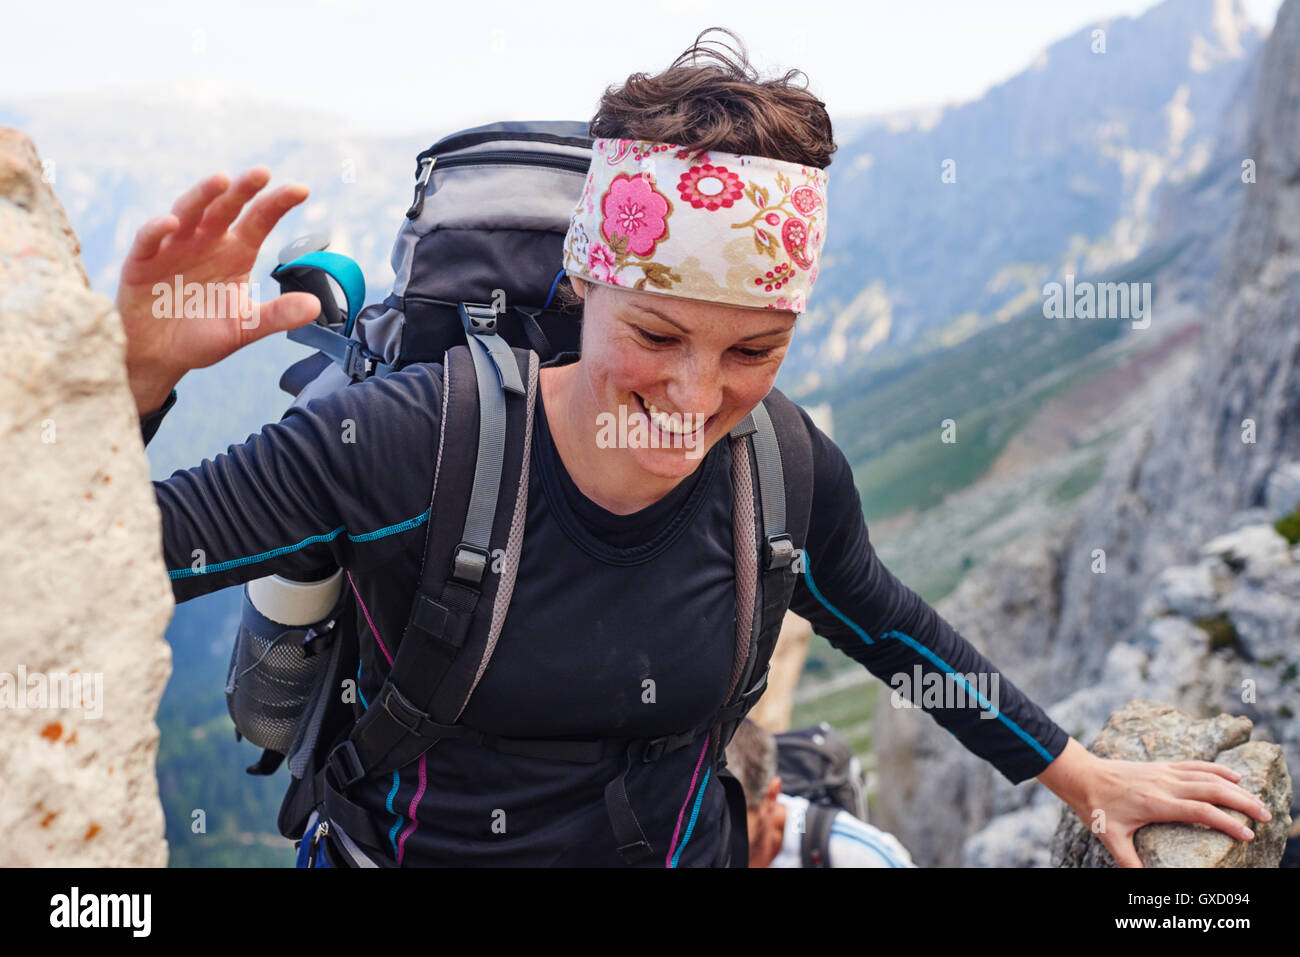 Woman hiking up mountain smiling, Austria - Stock Image